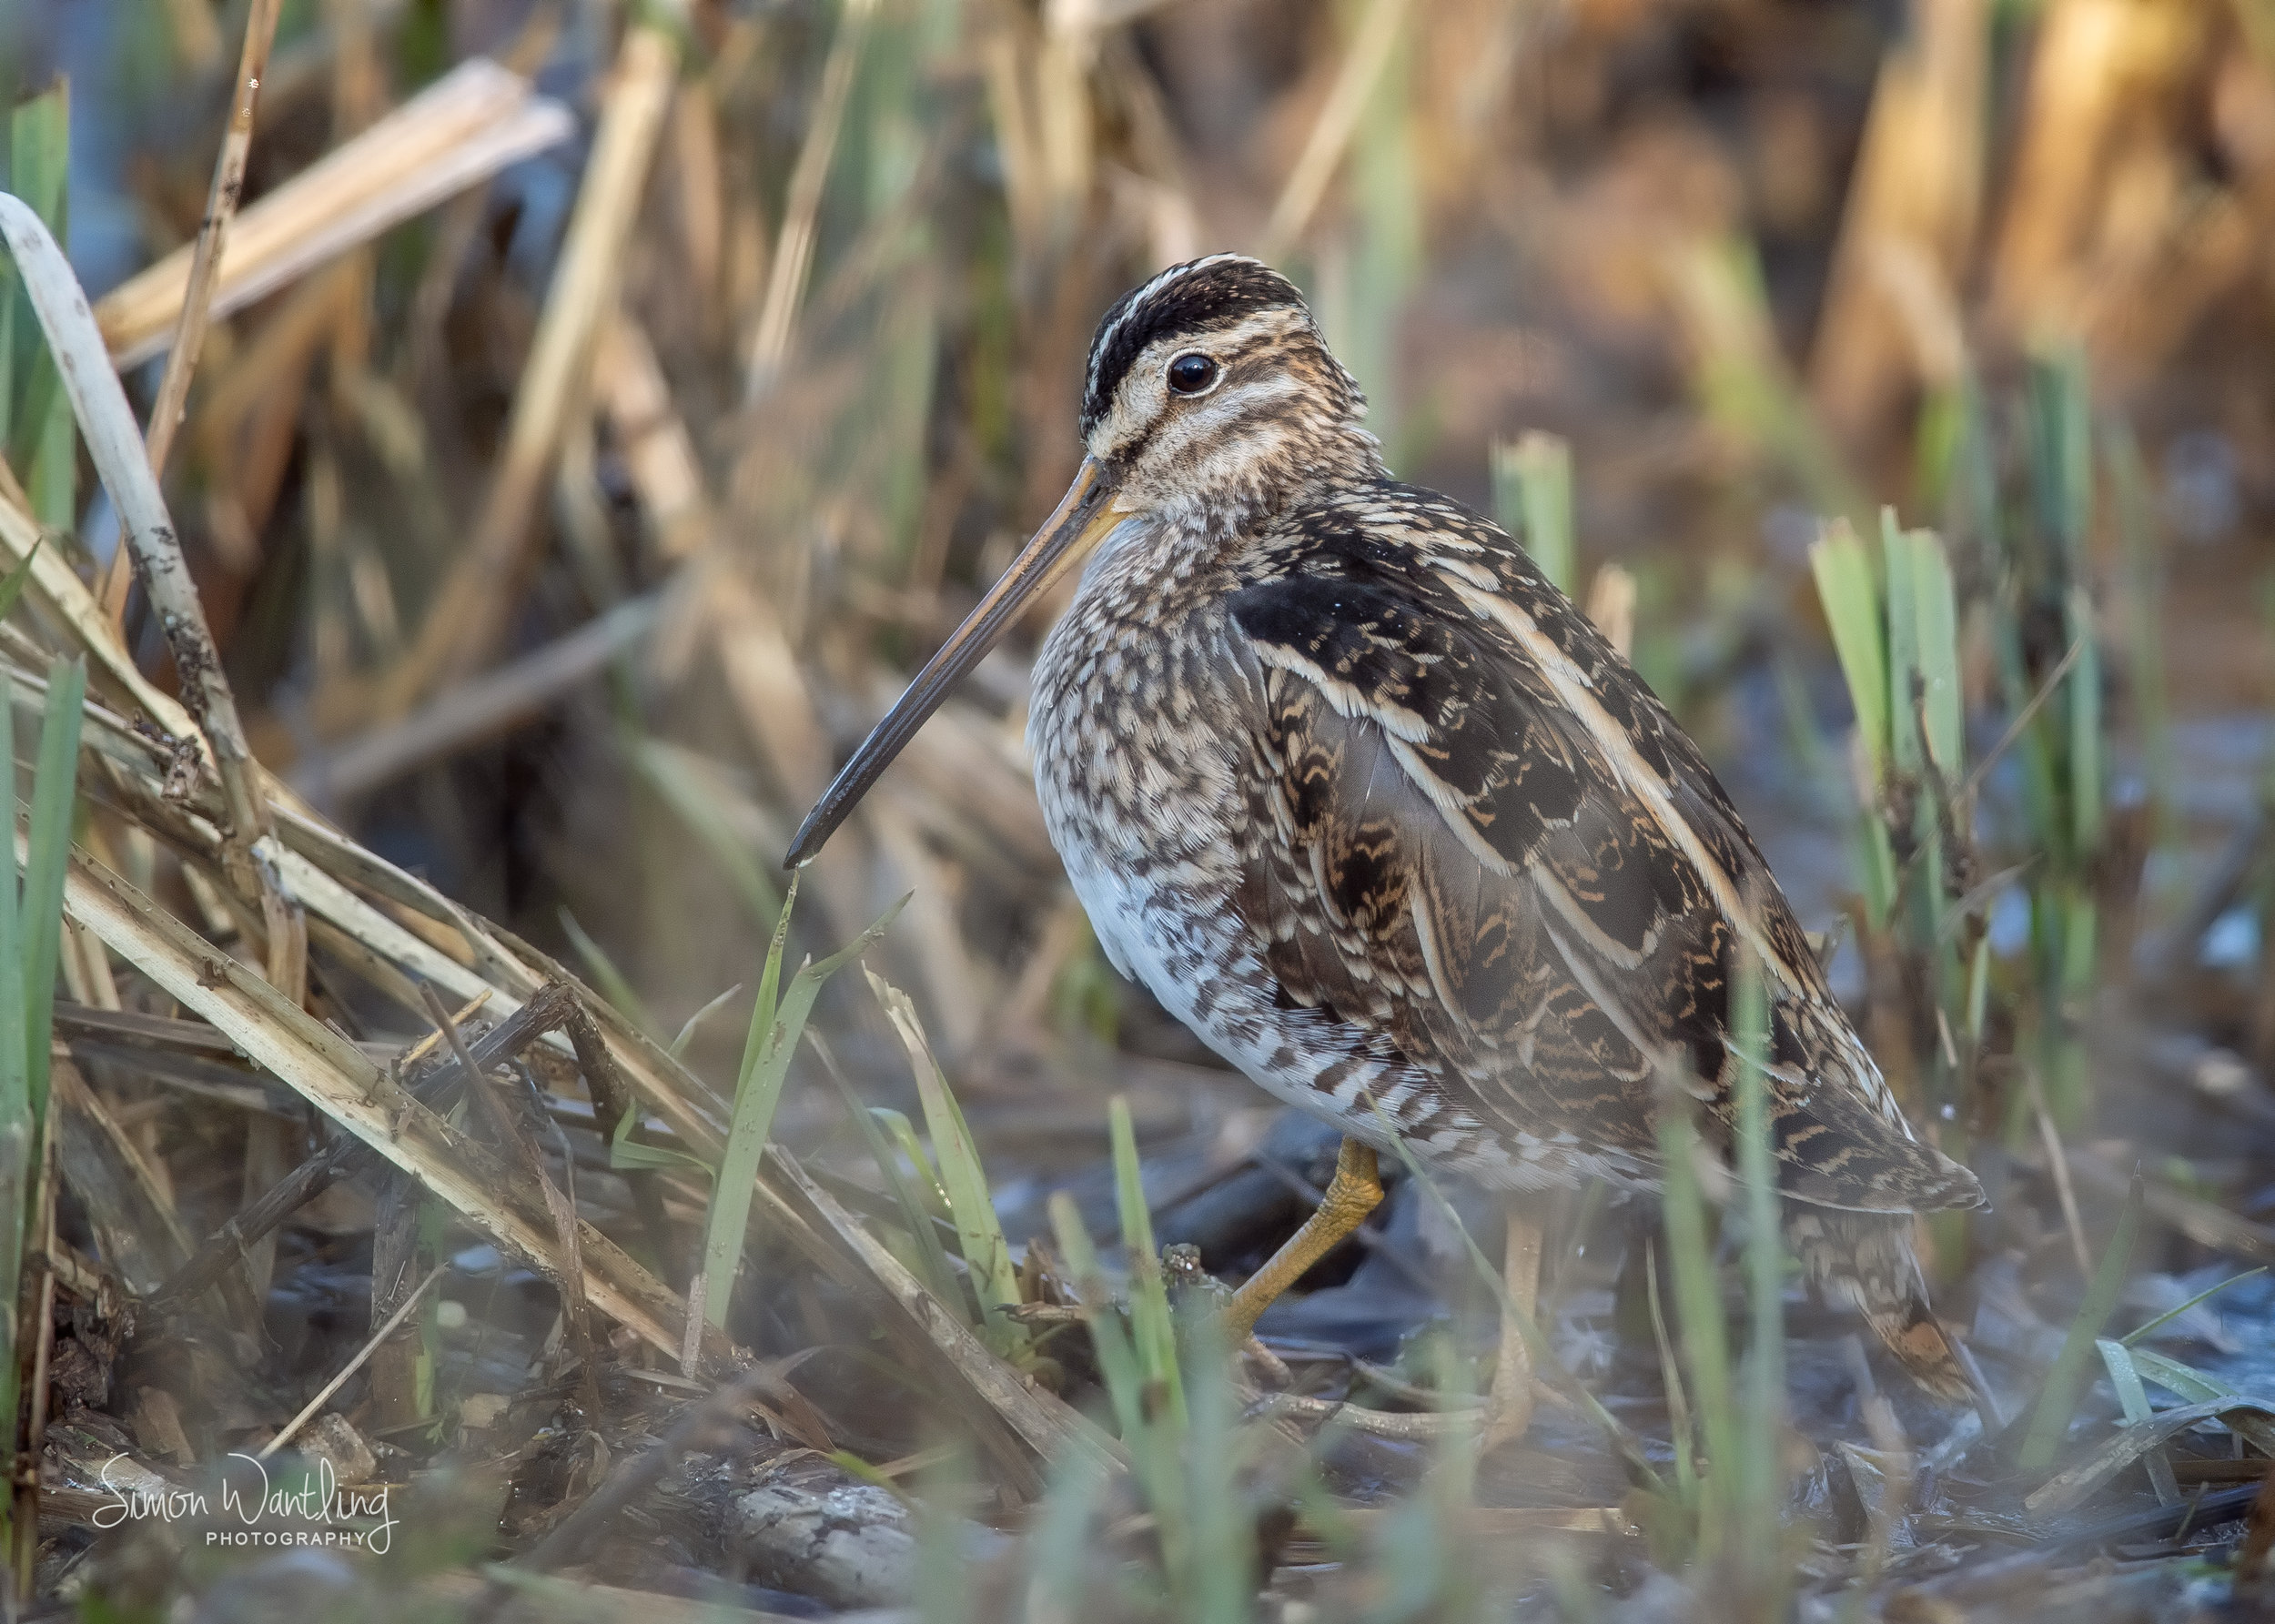 Snipe amongst the Reeds